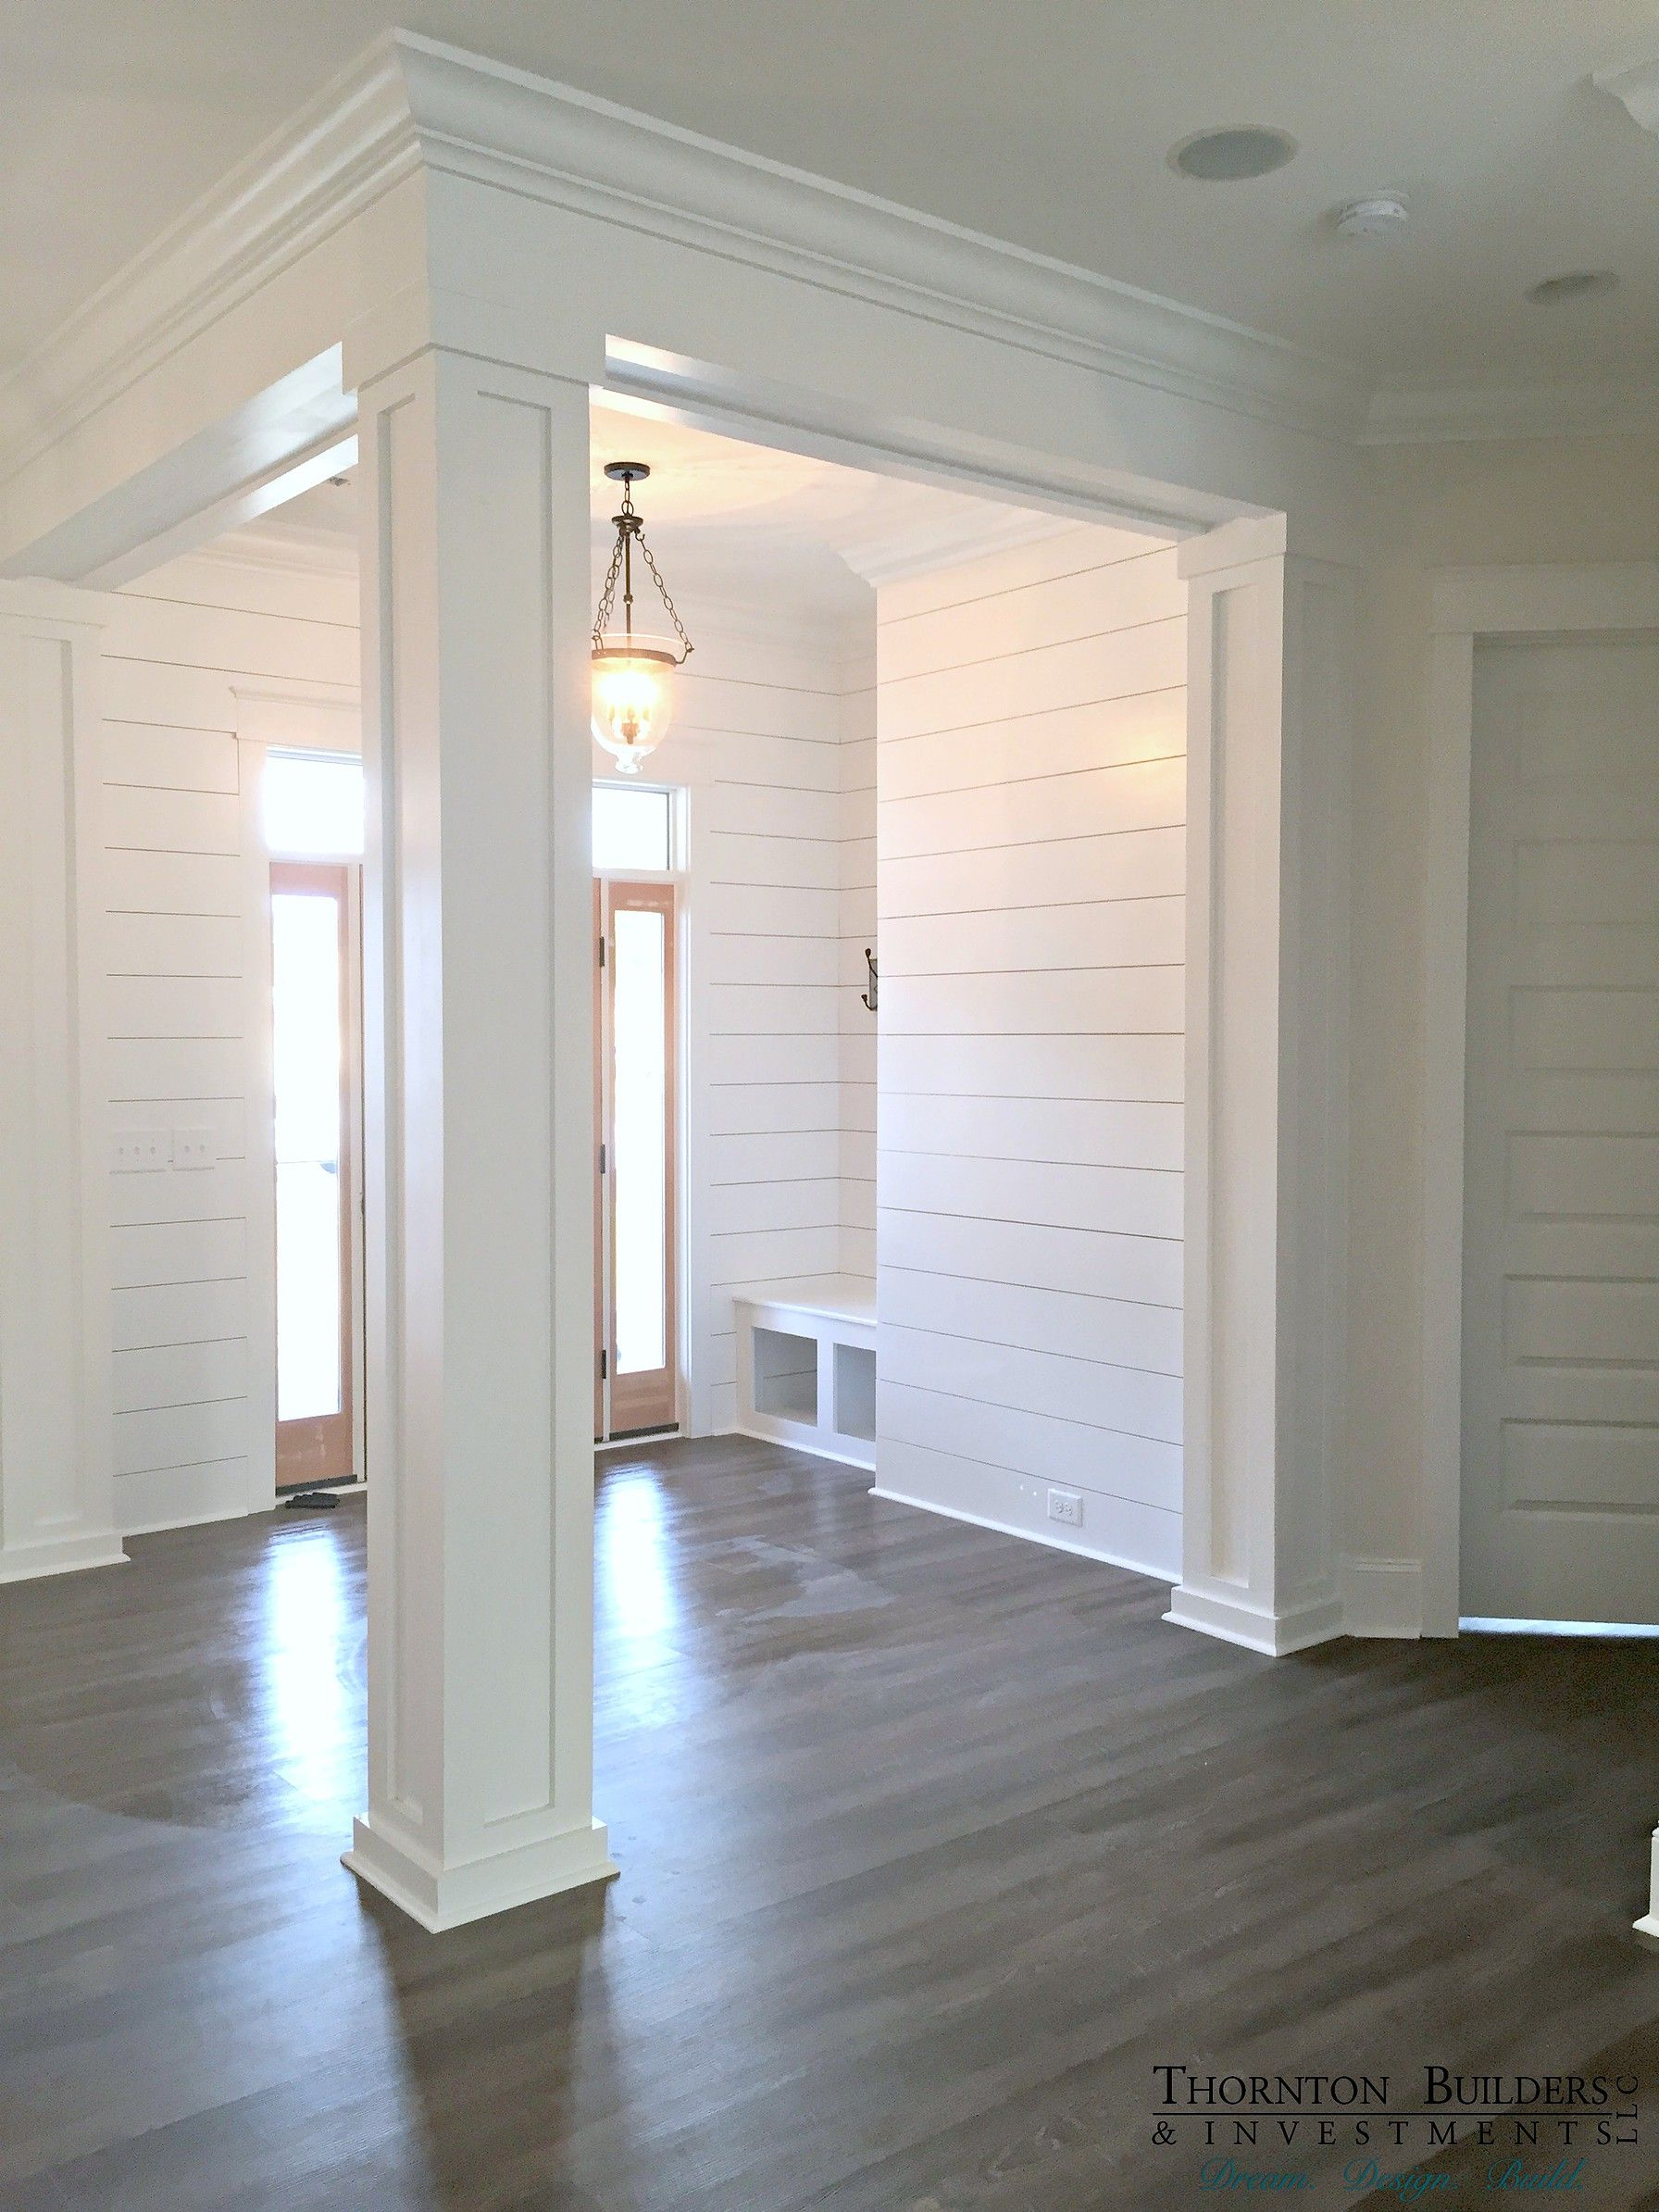 Thornton builders the modern farmhouse beautiful home for Interior support columns